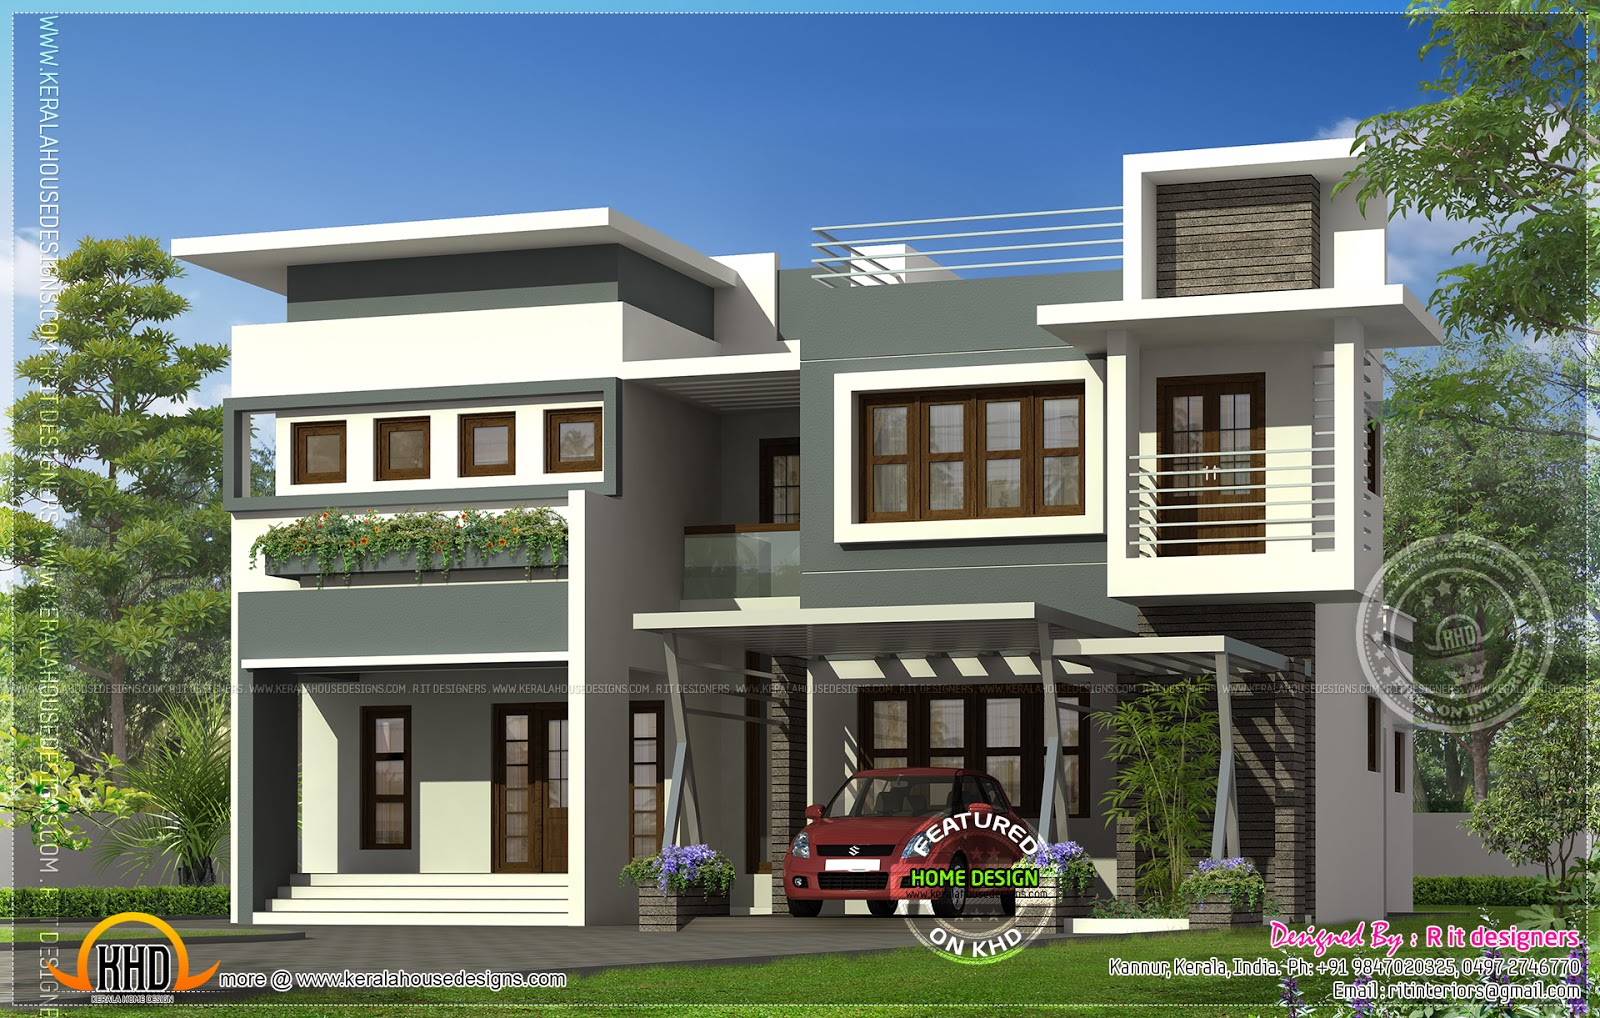 Modern contemporary residence design kerala home design for Modern home designs photos